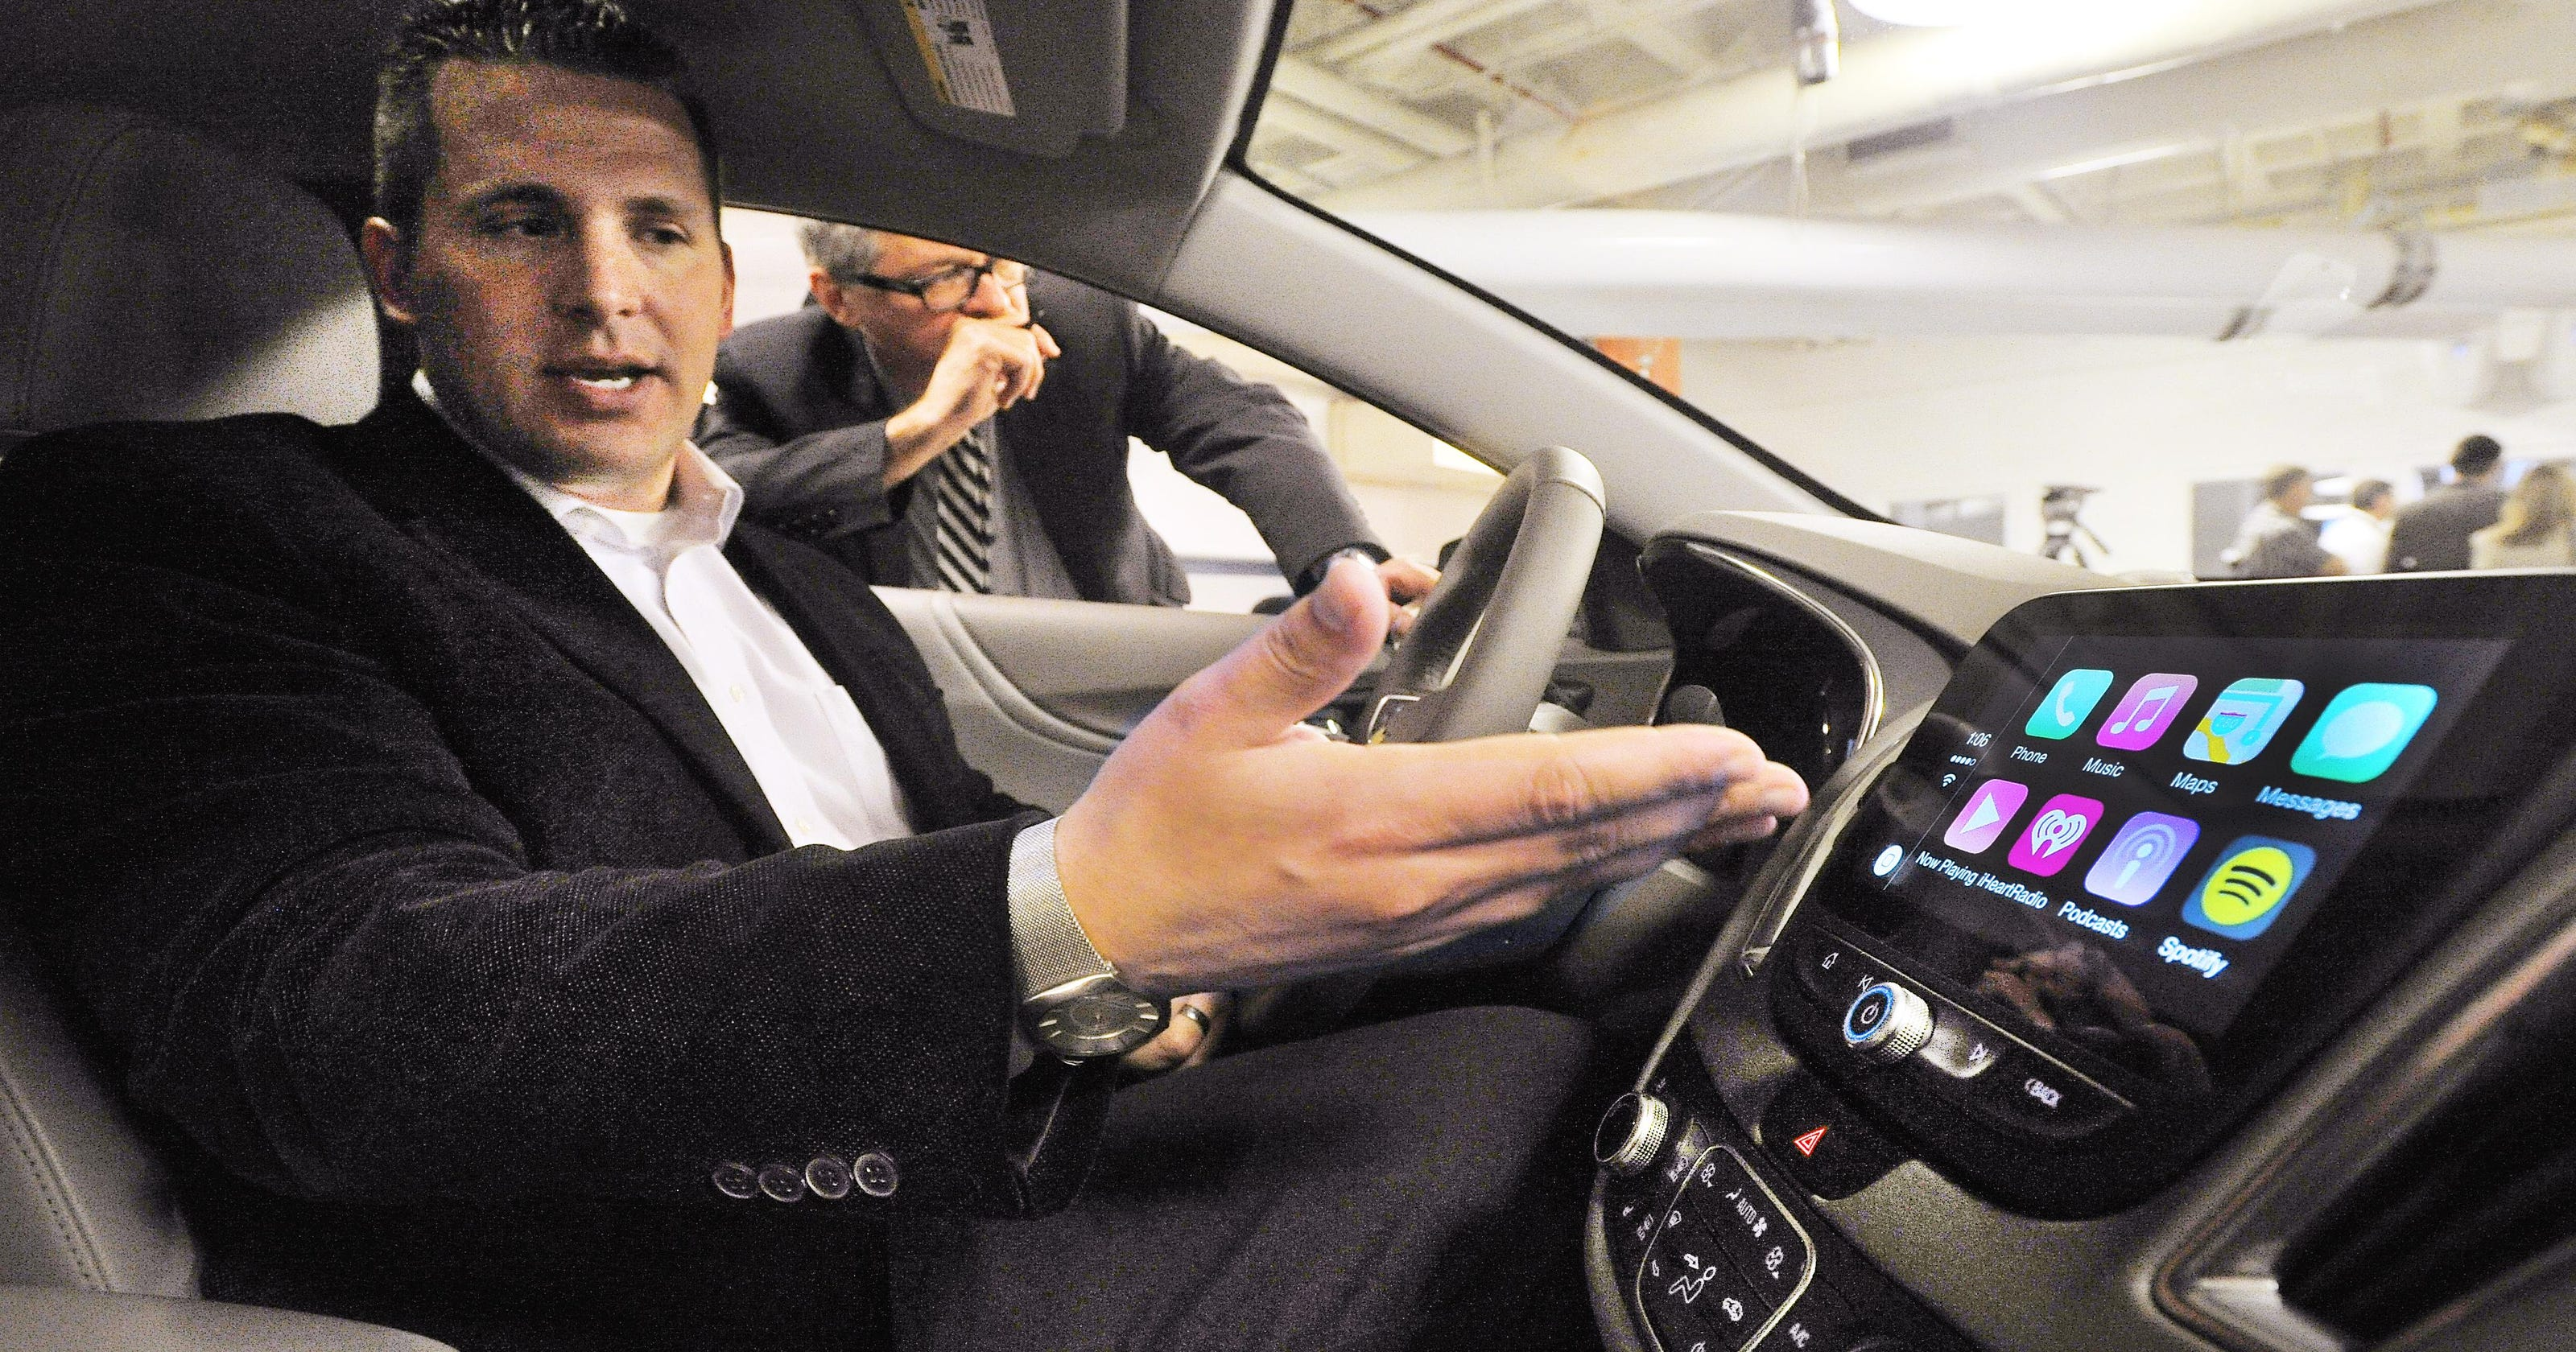 Chevy to offer Apple CarPlay, Android Auto in vehicles